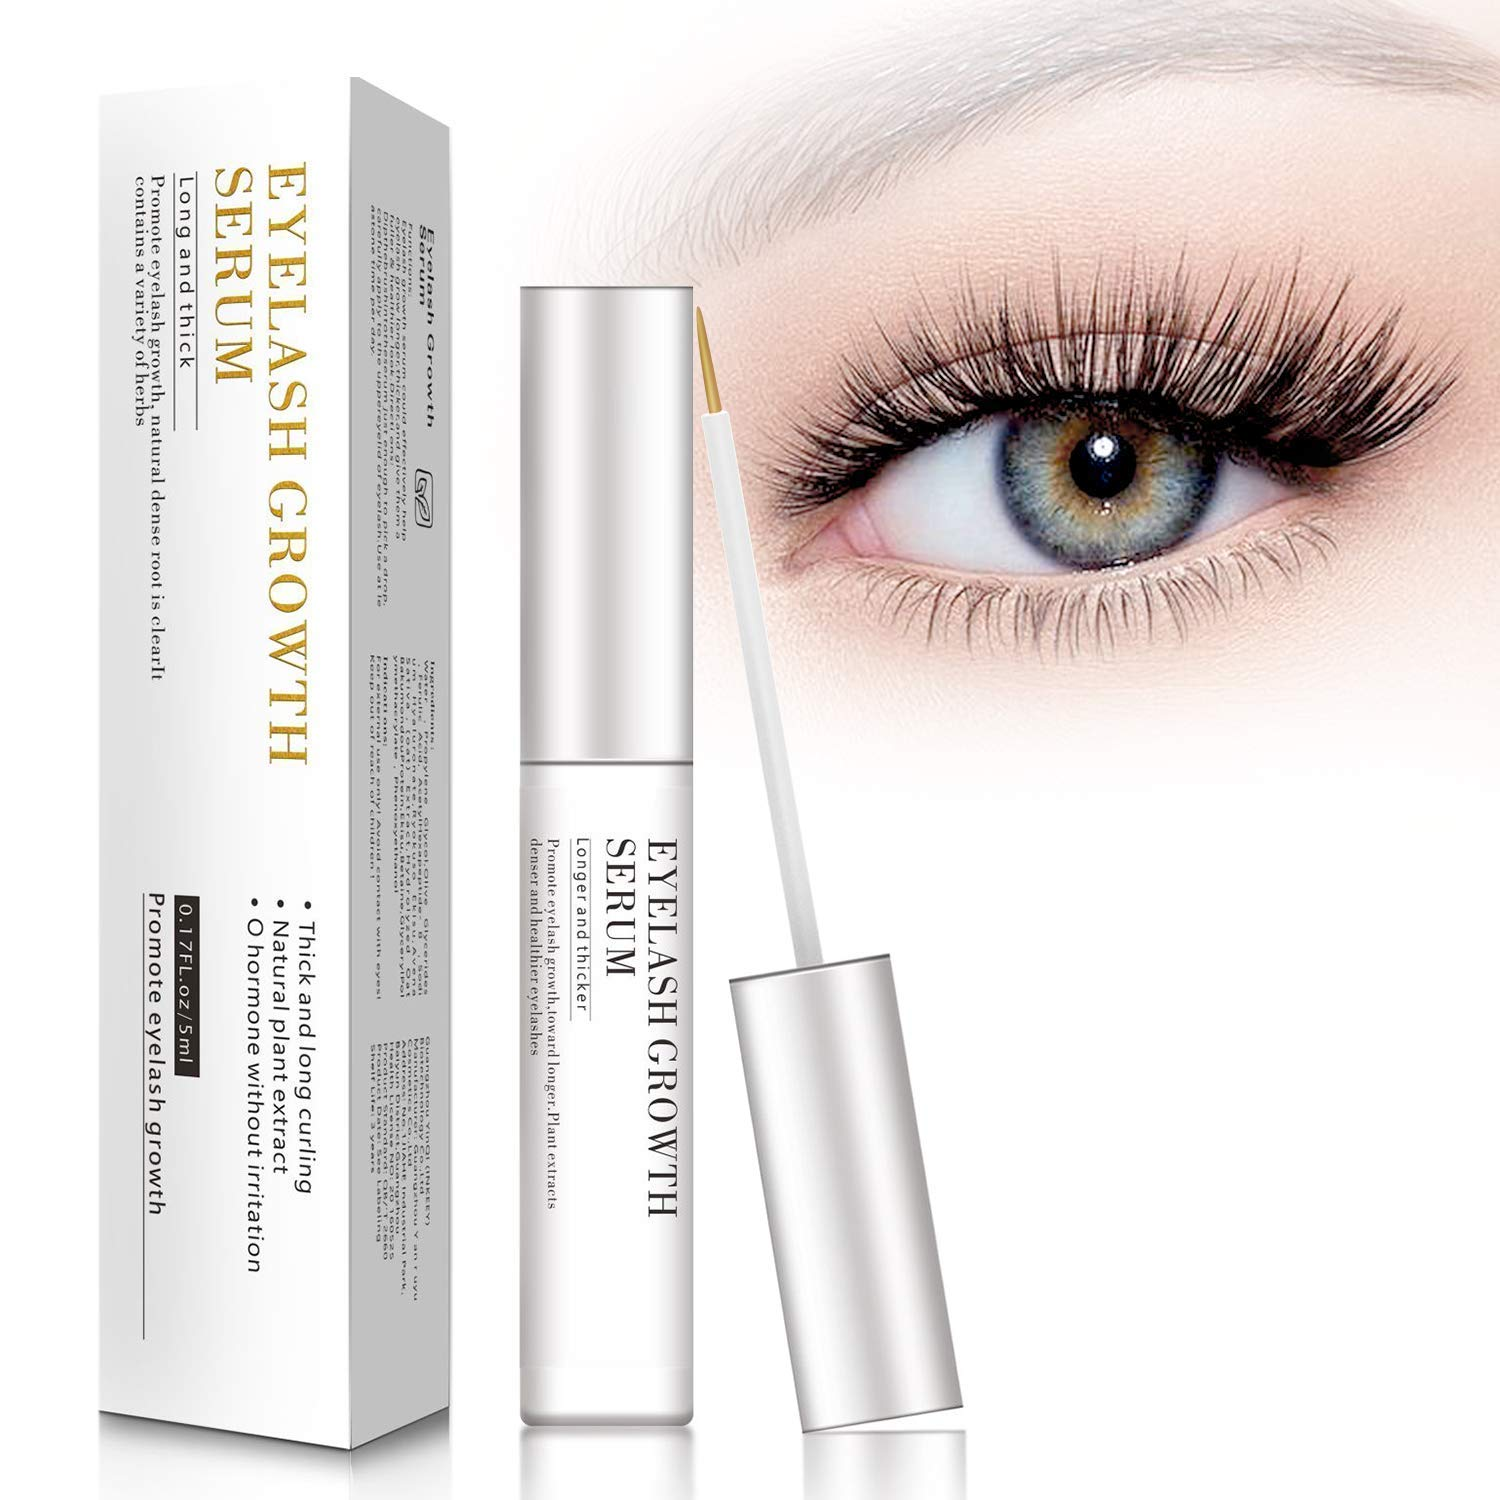 87a8194667a Amazon.com: MayBeau Eyelash Growth Serum,Natural Brow Lash Enhancer,Nourish  Damaged Lashes and Boost Rapid Growth: Beauty